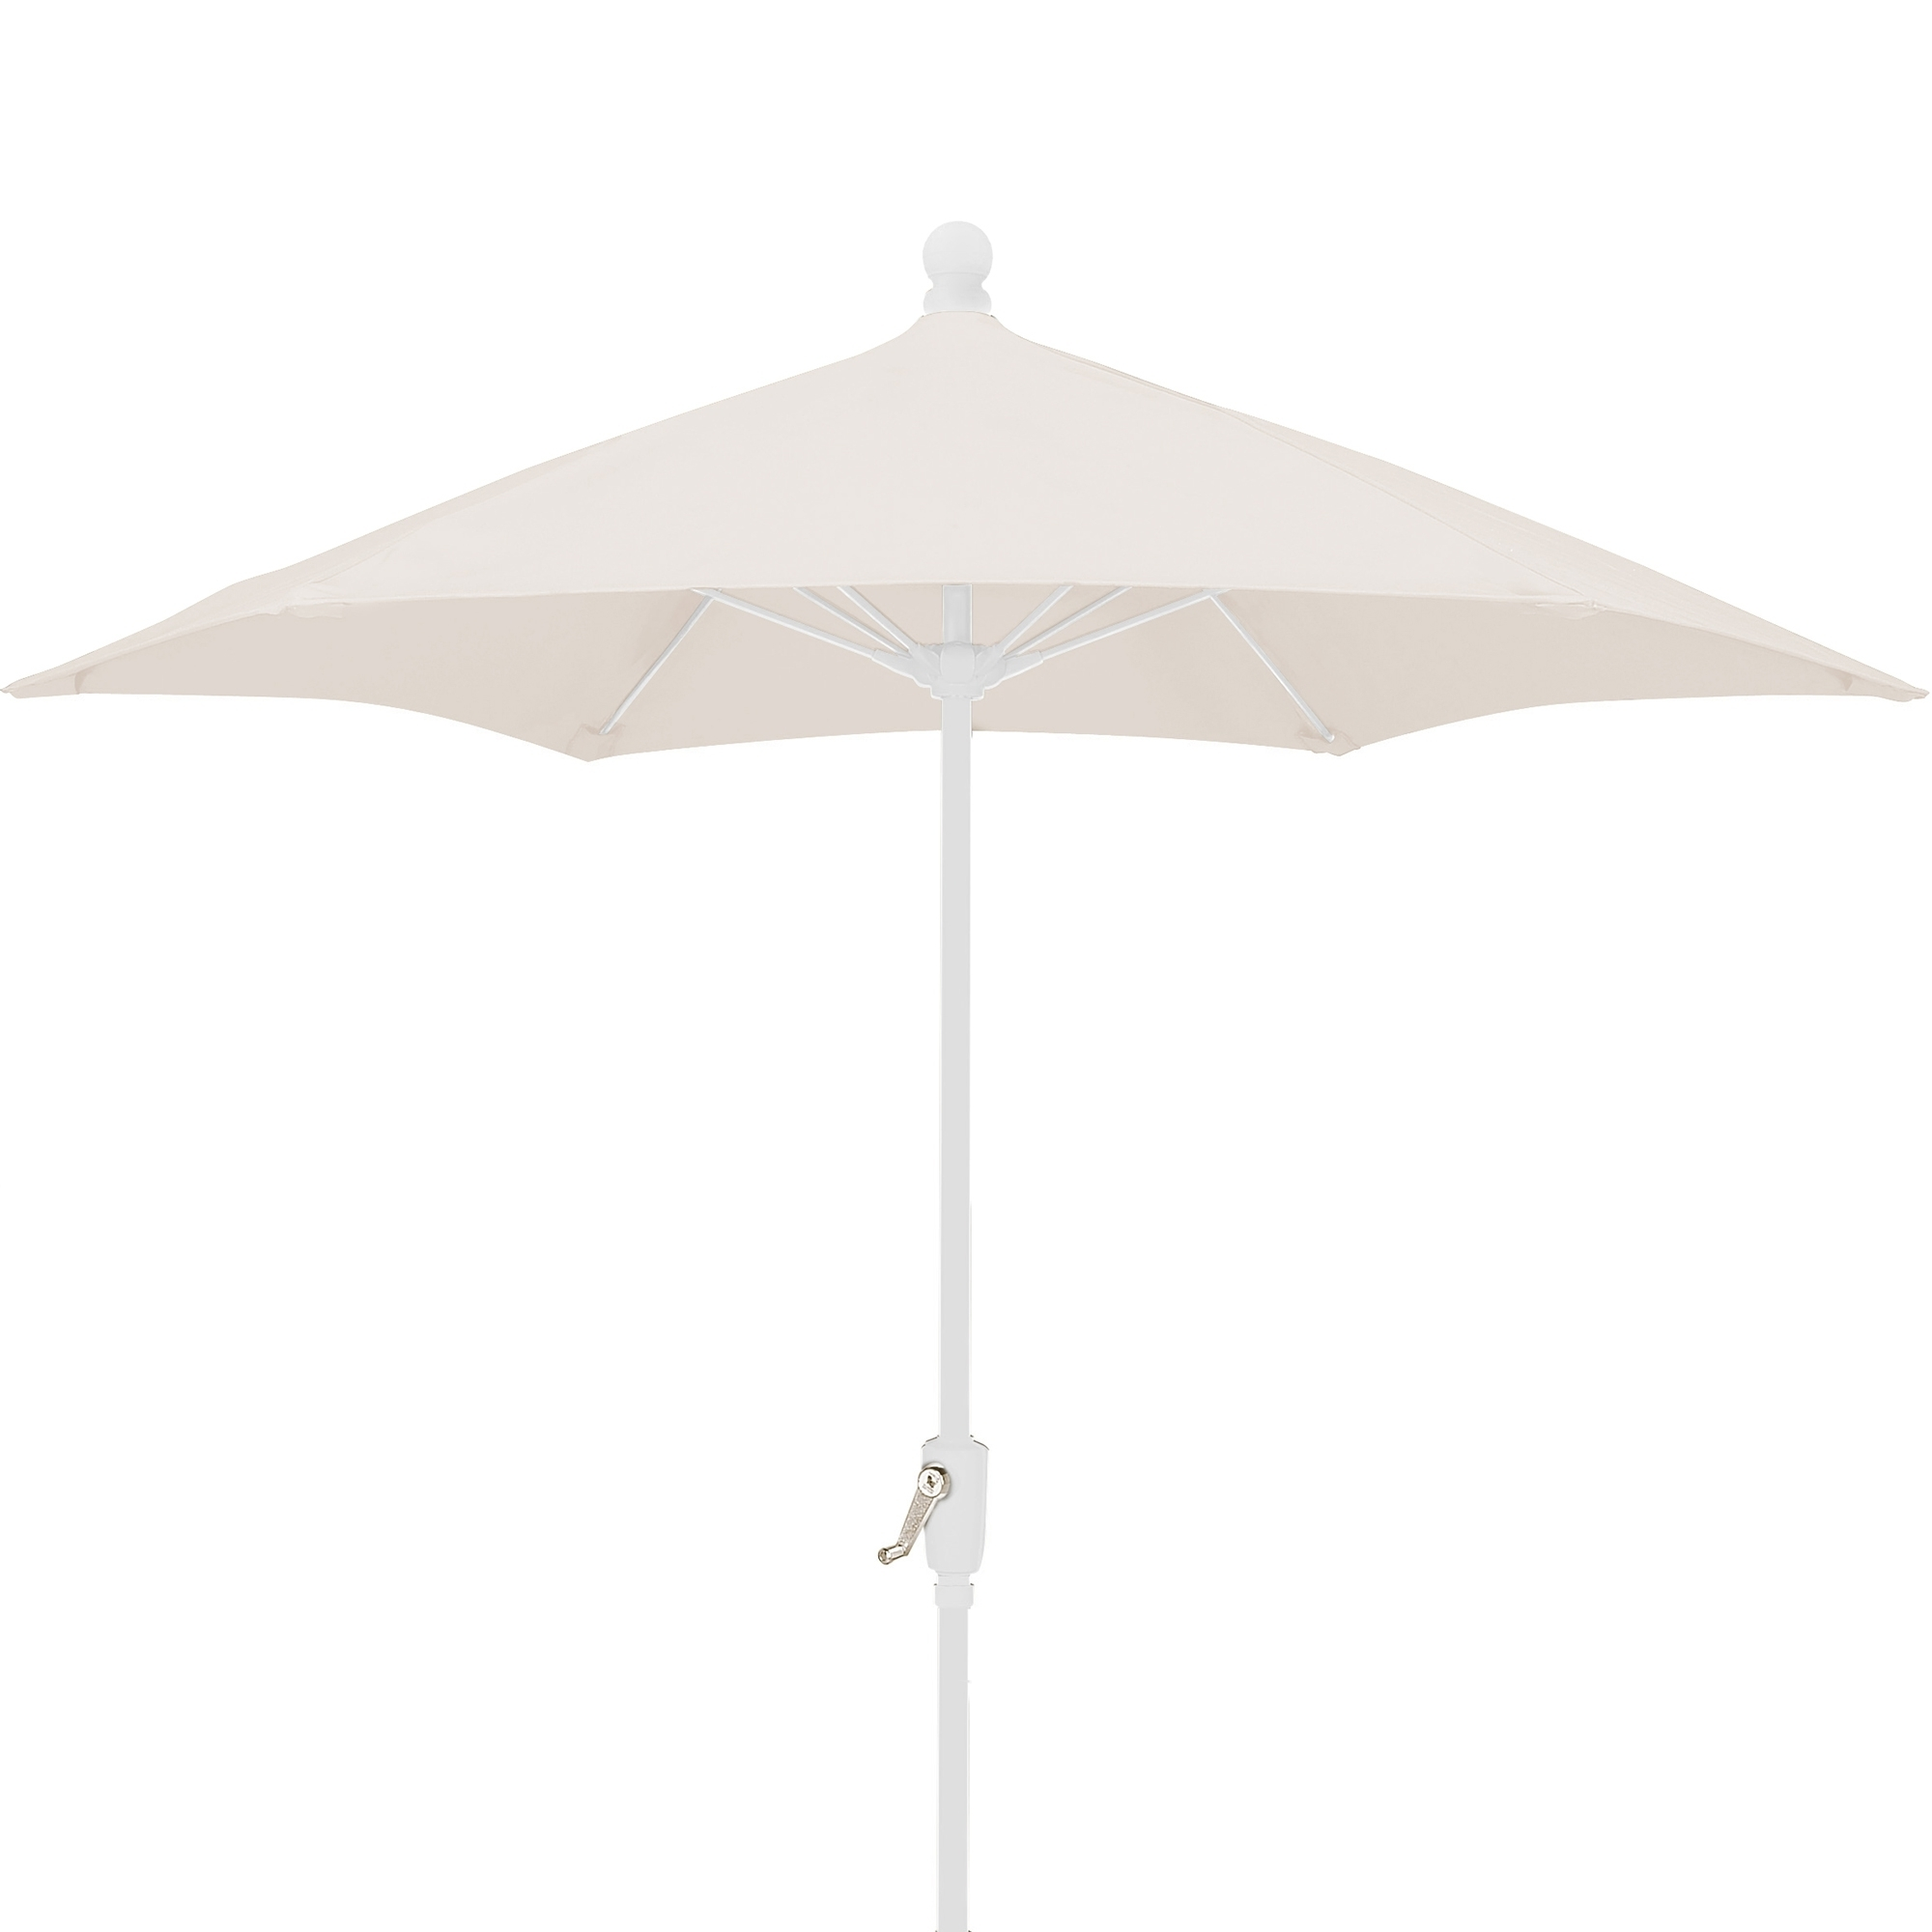 Preferred Patio Umbrellas With White Pole In  (View 18 of 20)